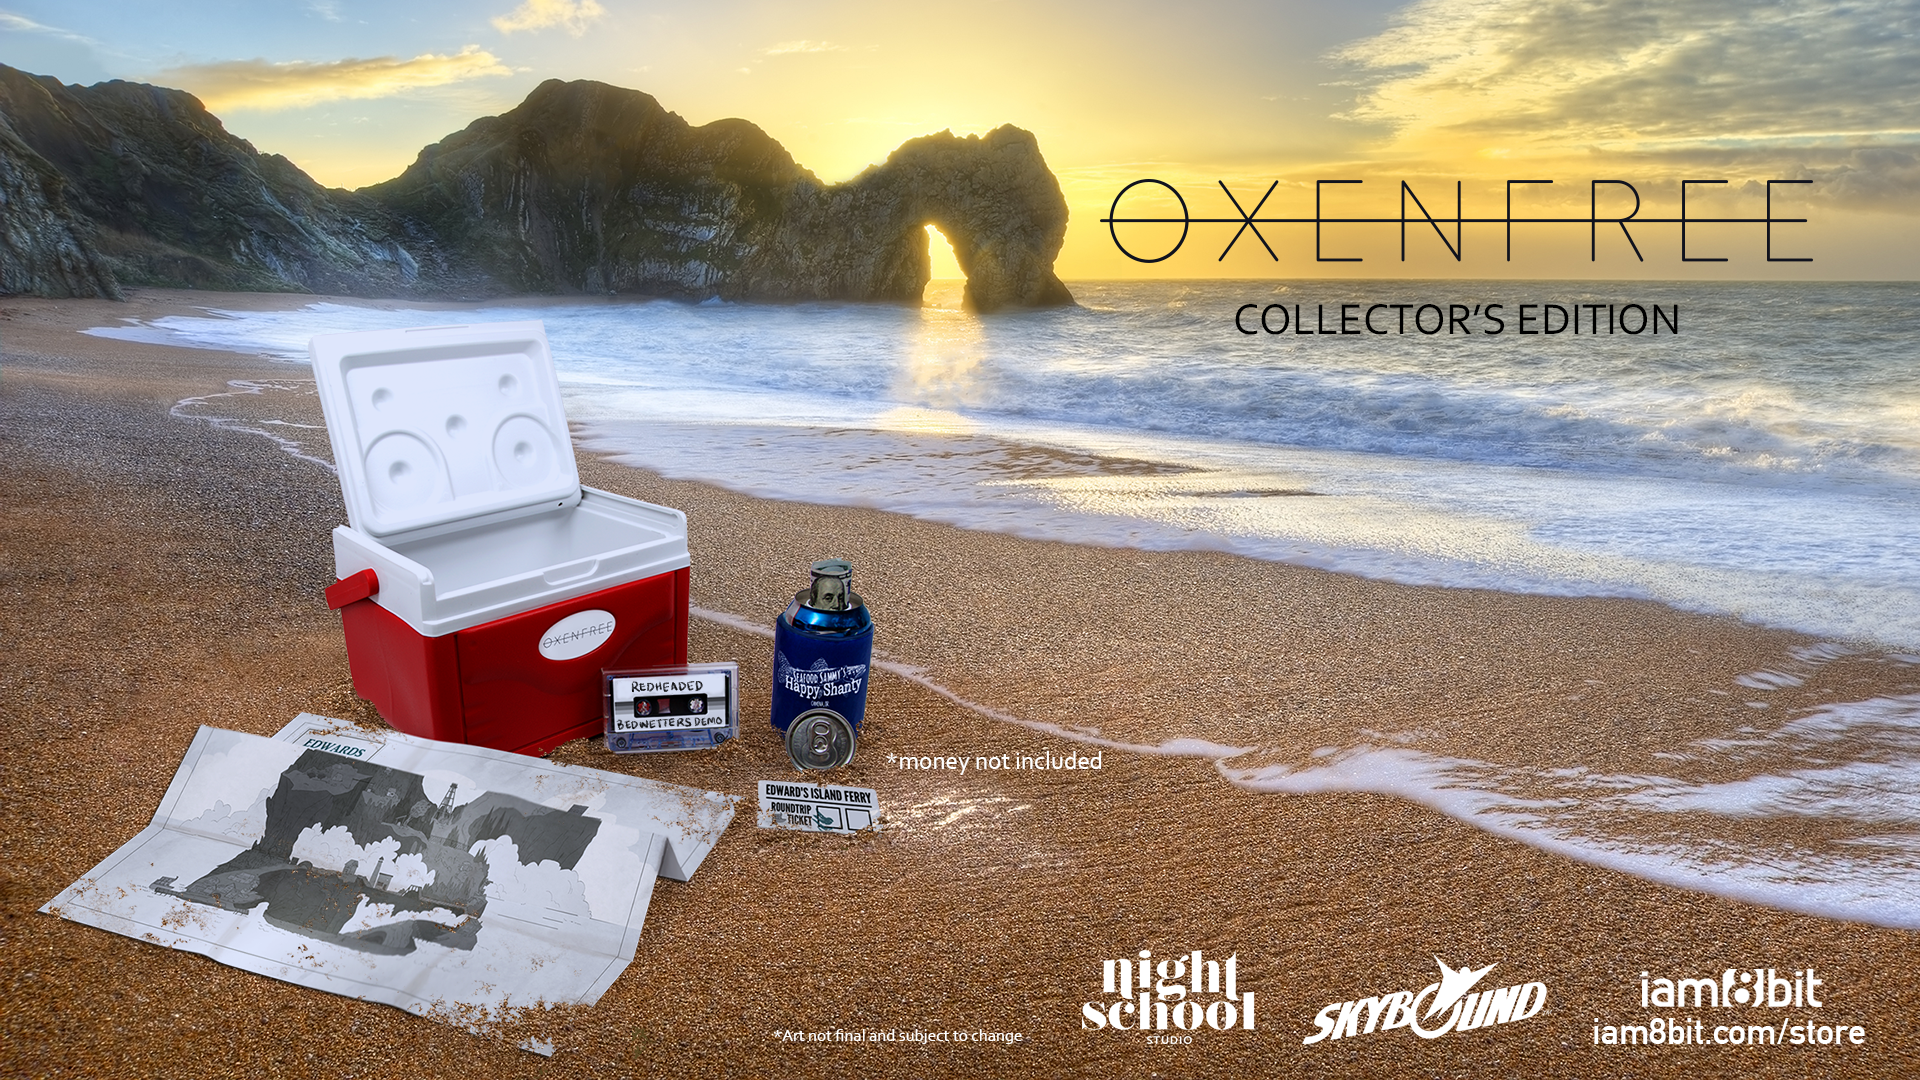 Oxenfree Collector's Edition